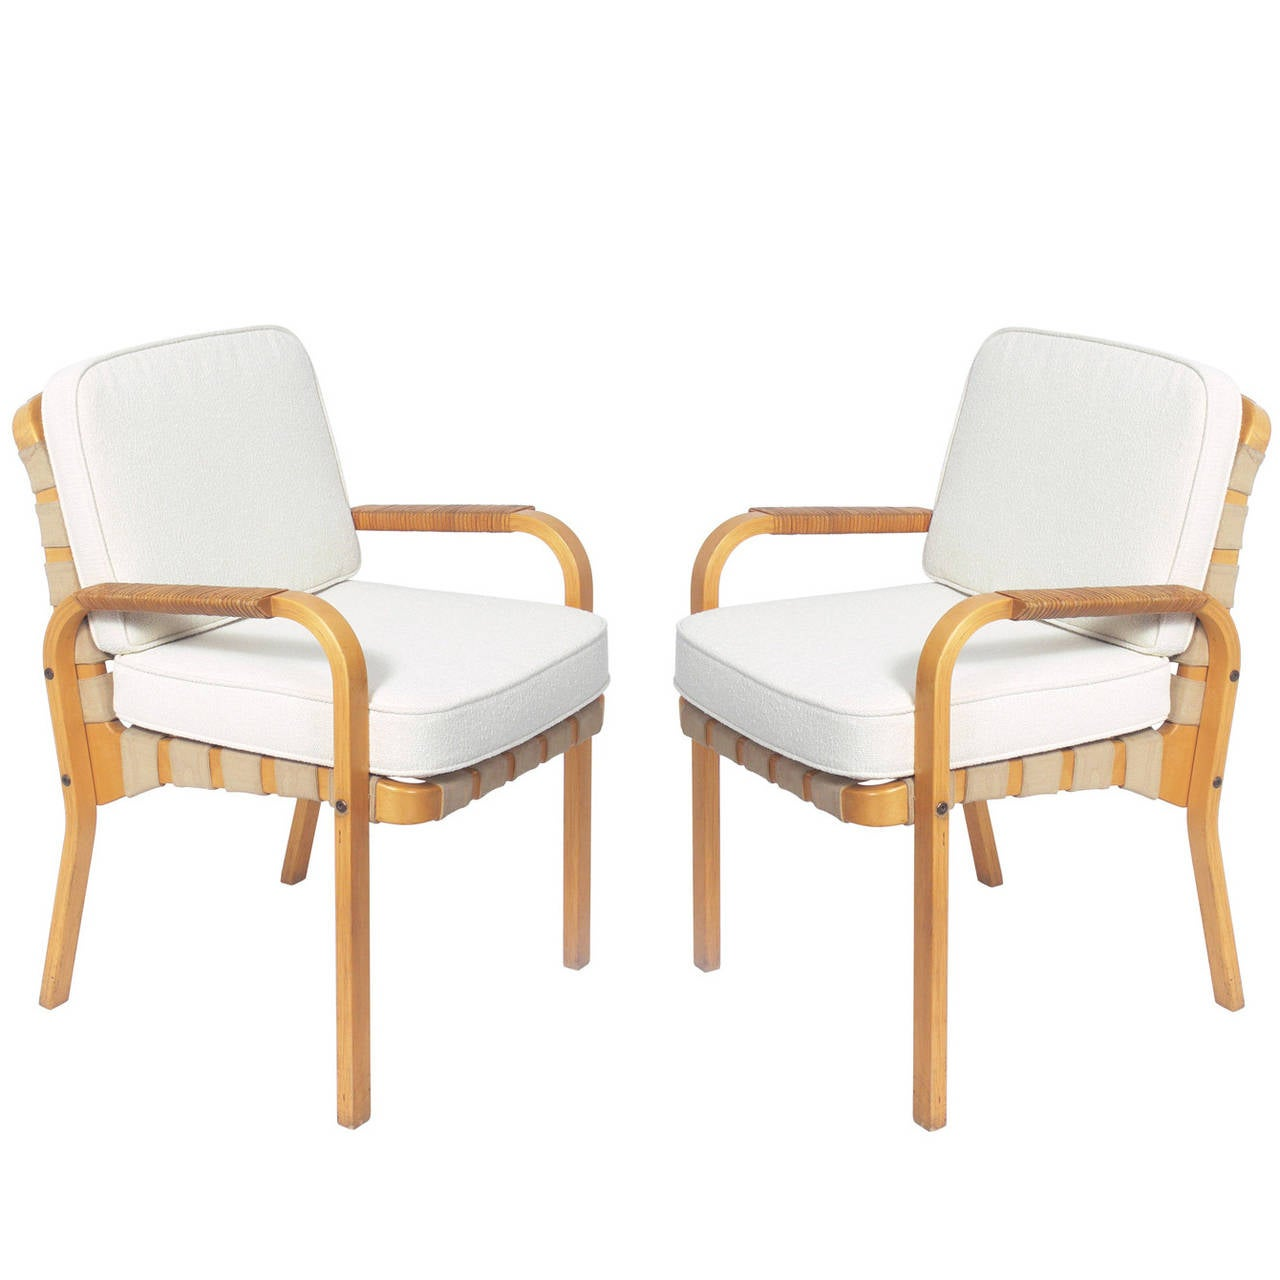 modern bentwood chairs stressless chair squeaks pair of lounge designed by alvar